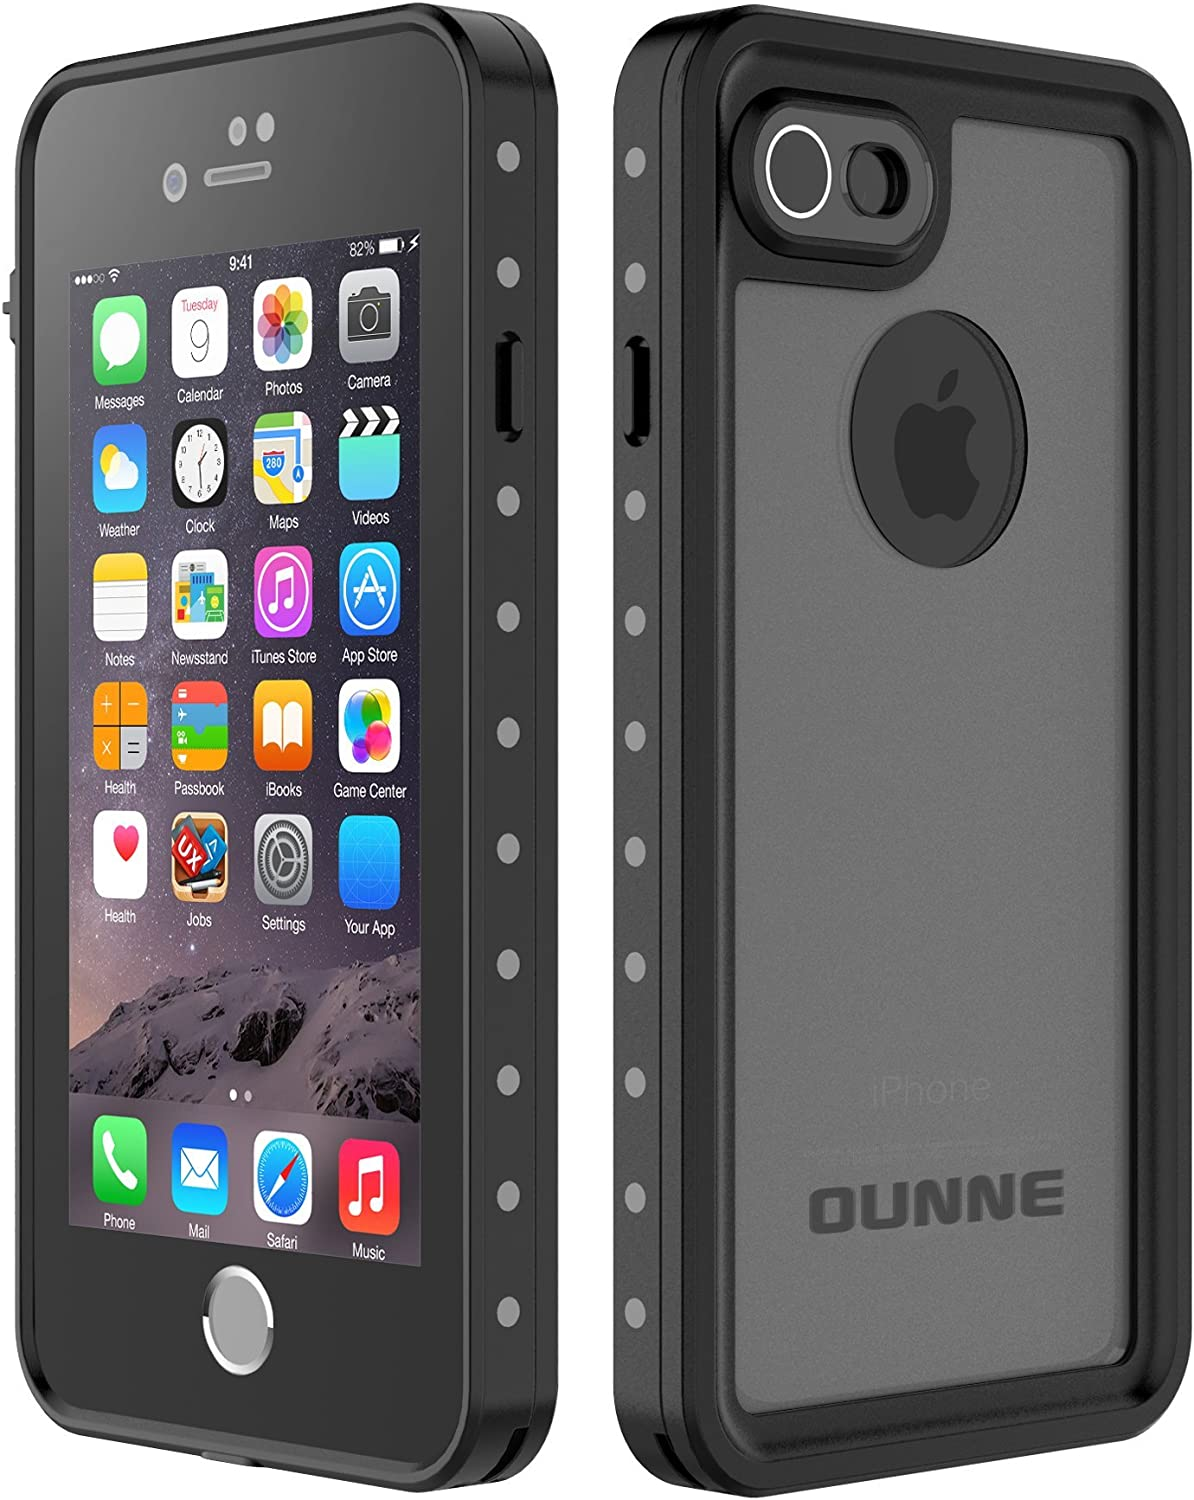 iPhone 7/8 Waterproof Case, OUNNE Underwater Cover Full Body Protective Shockproof Snowproof Dirtproof IP68 Certified Waterproof Case for iPhone 7/8 (4.7inch)